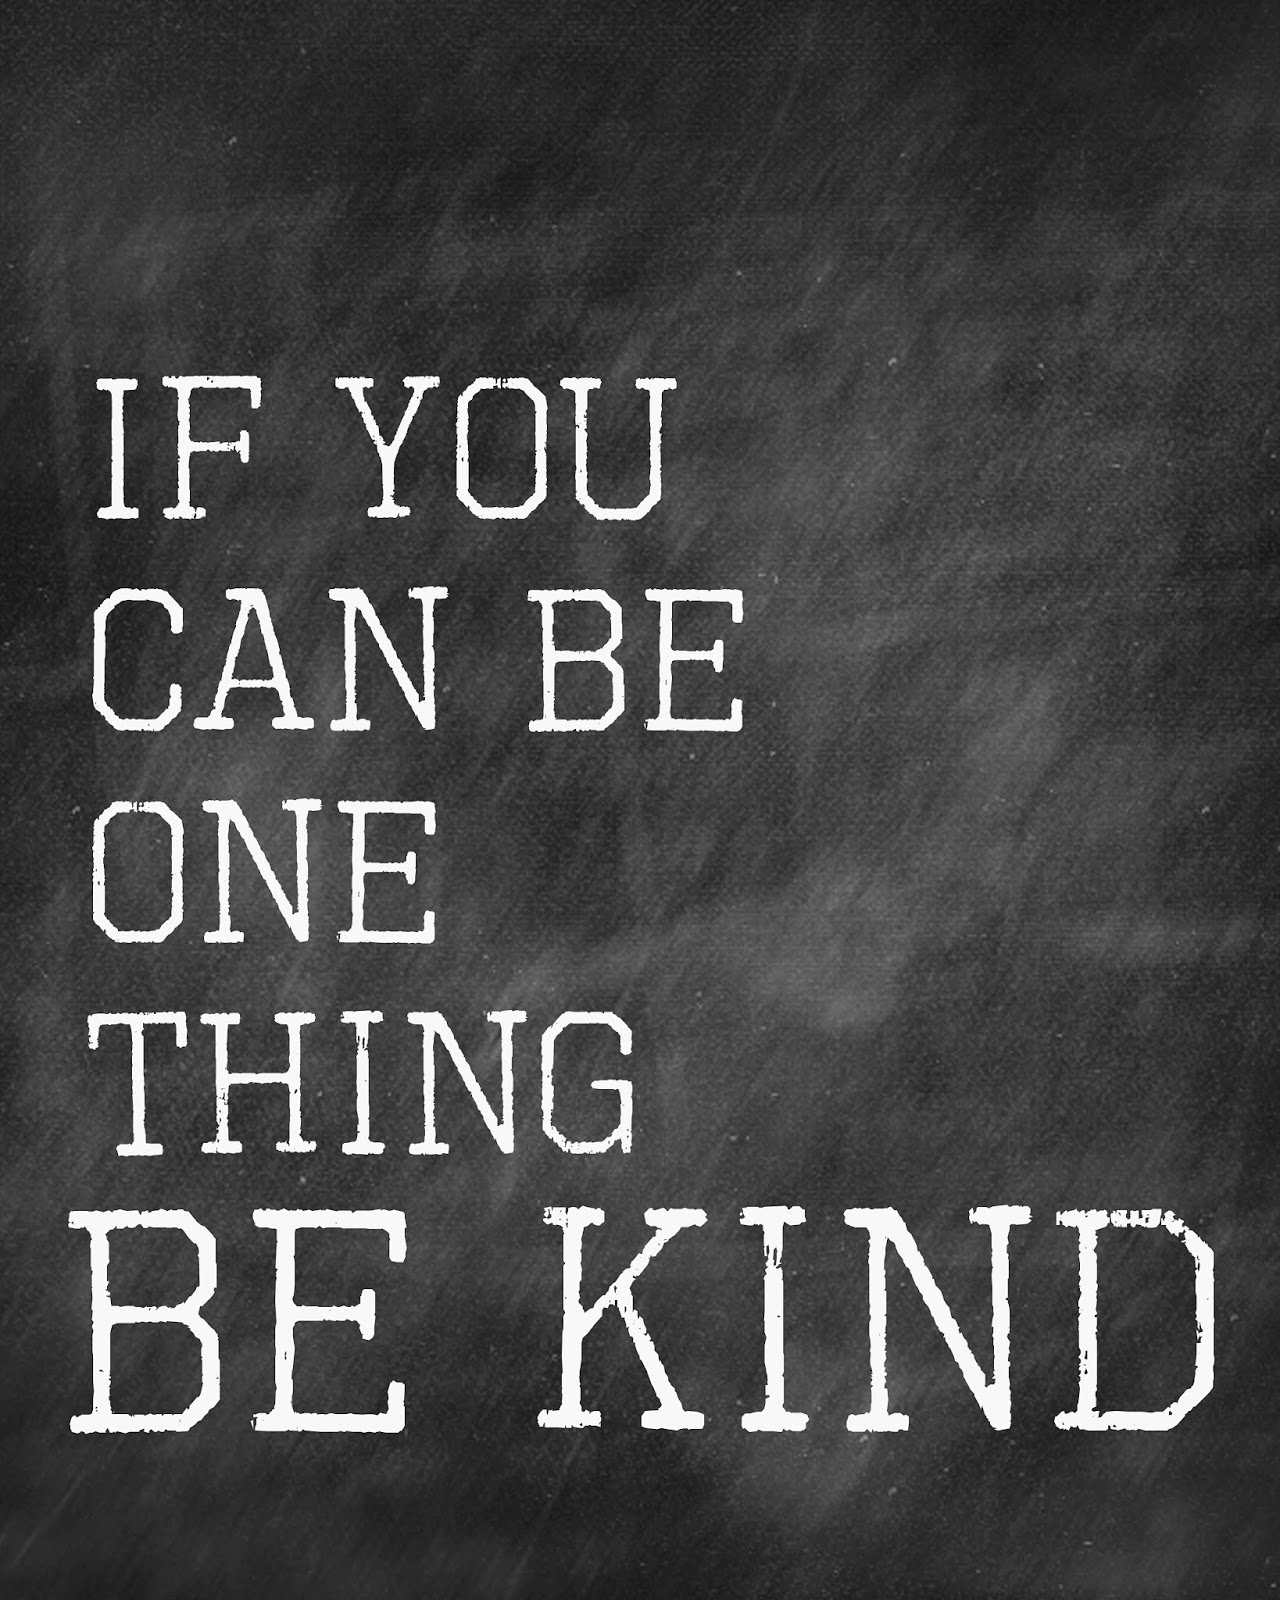 Kind Quotes And Sayings: A Pocket Full Of LDS Prints: Be Kind